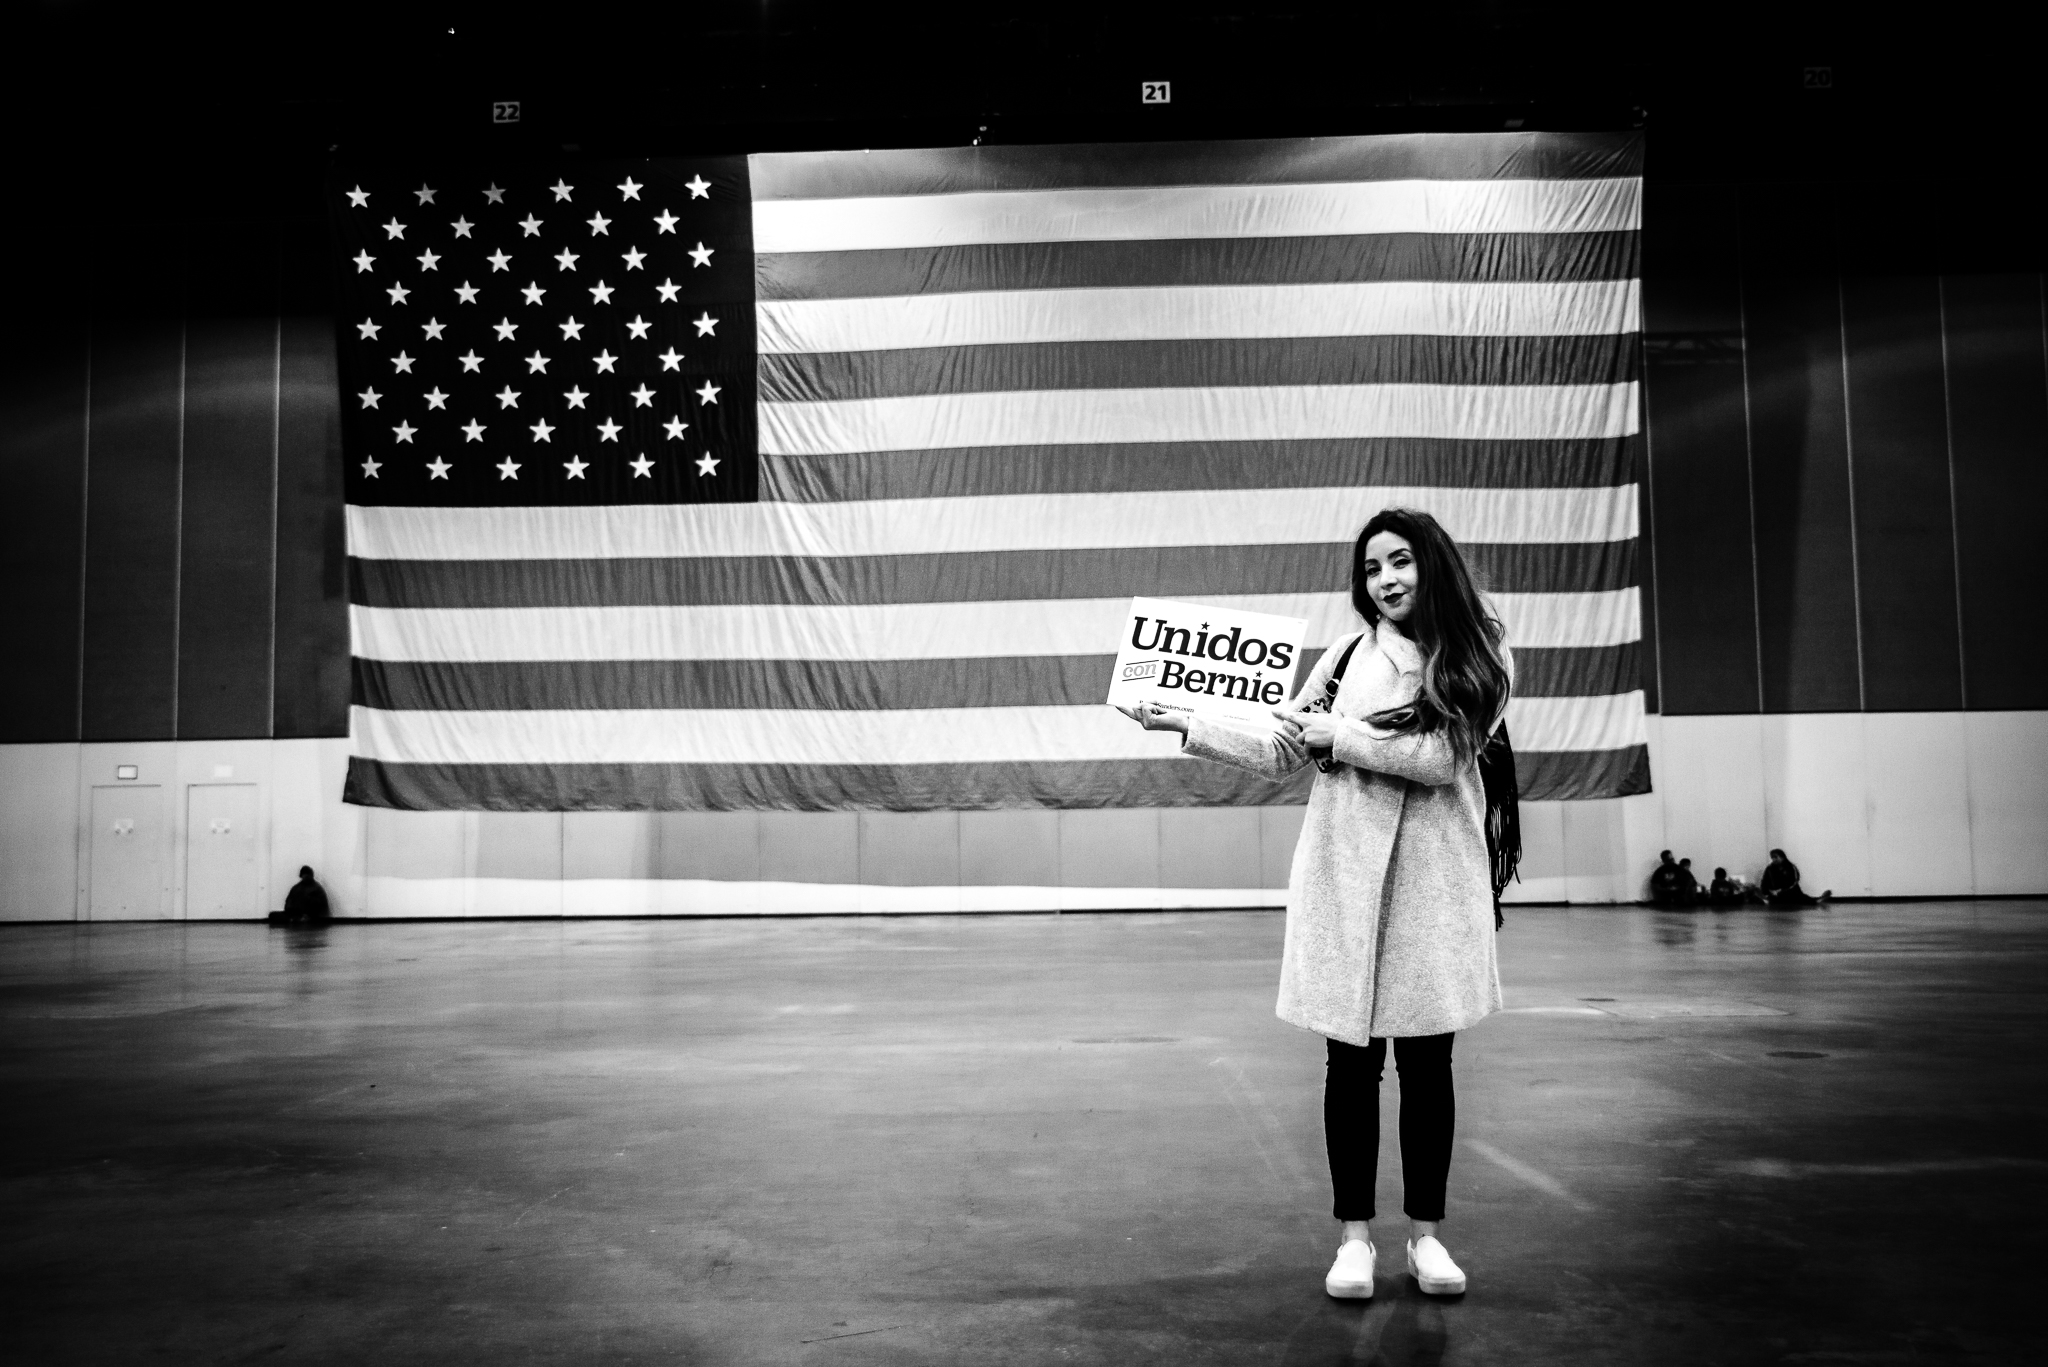 A Bernie Sanders supporter poses in Los Angeles in front of an American flag with a sign that reads: Unidos por Berine. March 1, 2020. Lance Monotone.